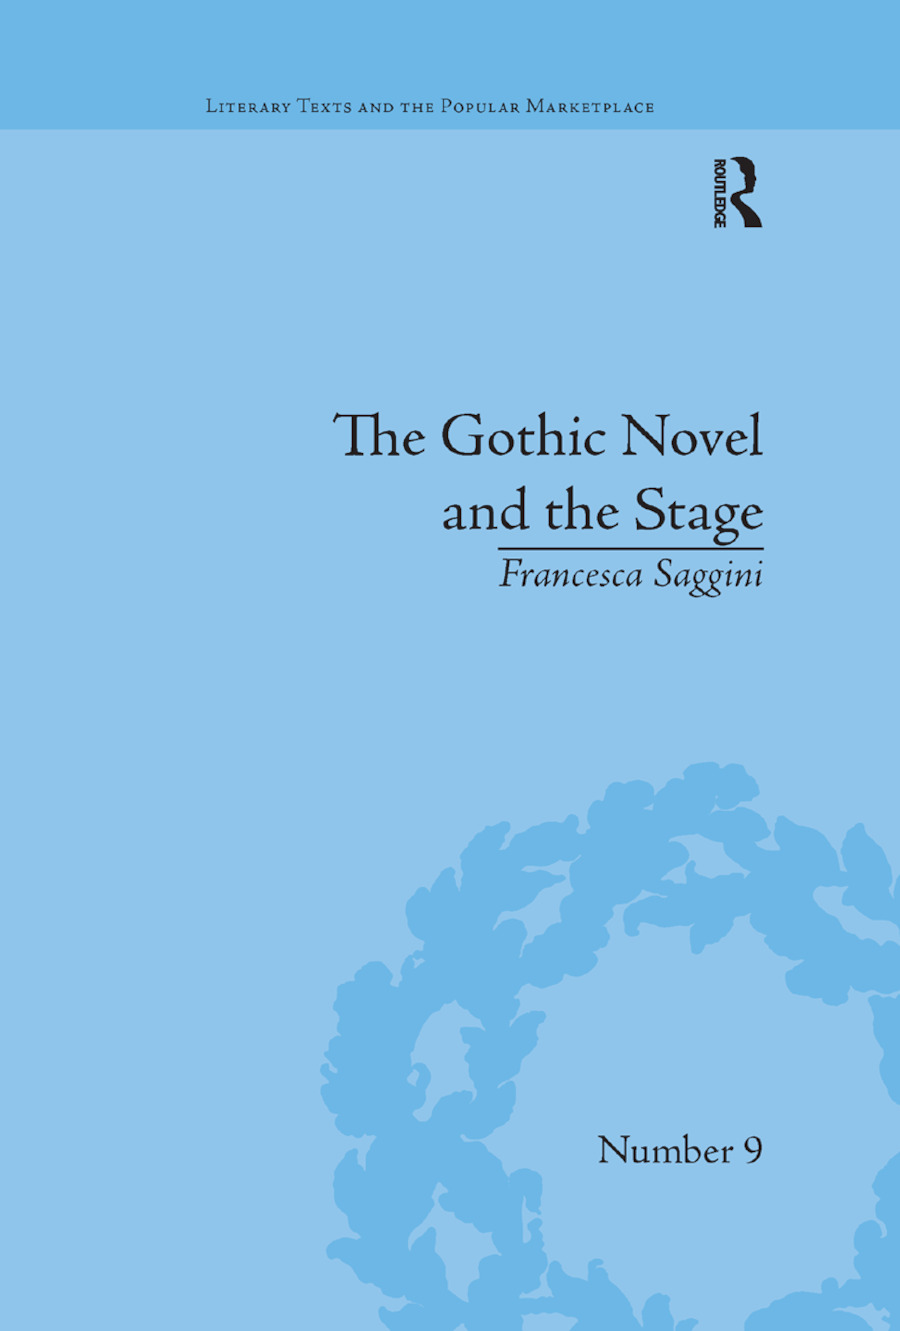 The Gothic Novel and the Stage